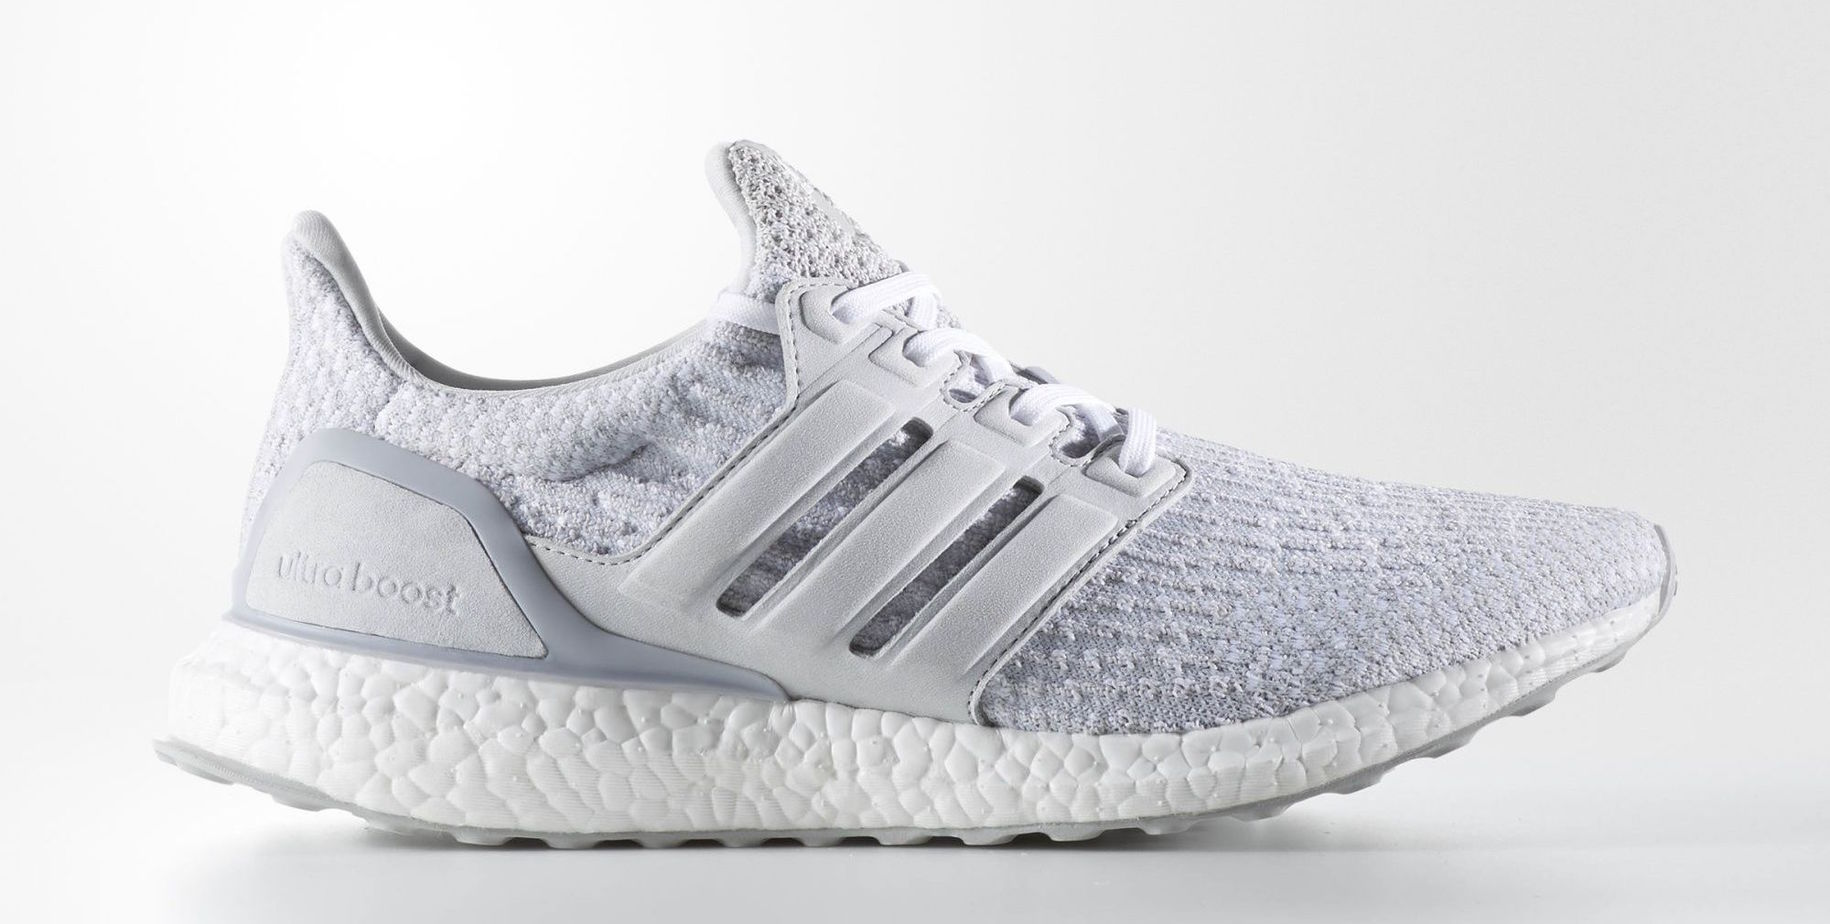 new style 7a6a7 21935 ... sweden related adidas ultra boost release dates d83b8 61190